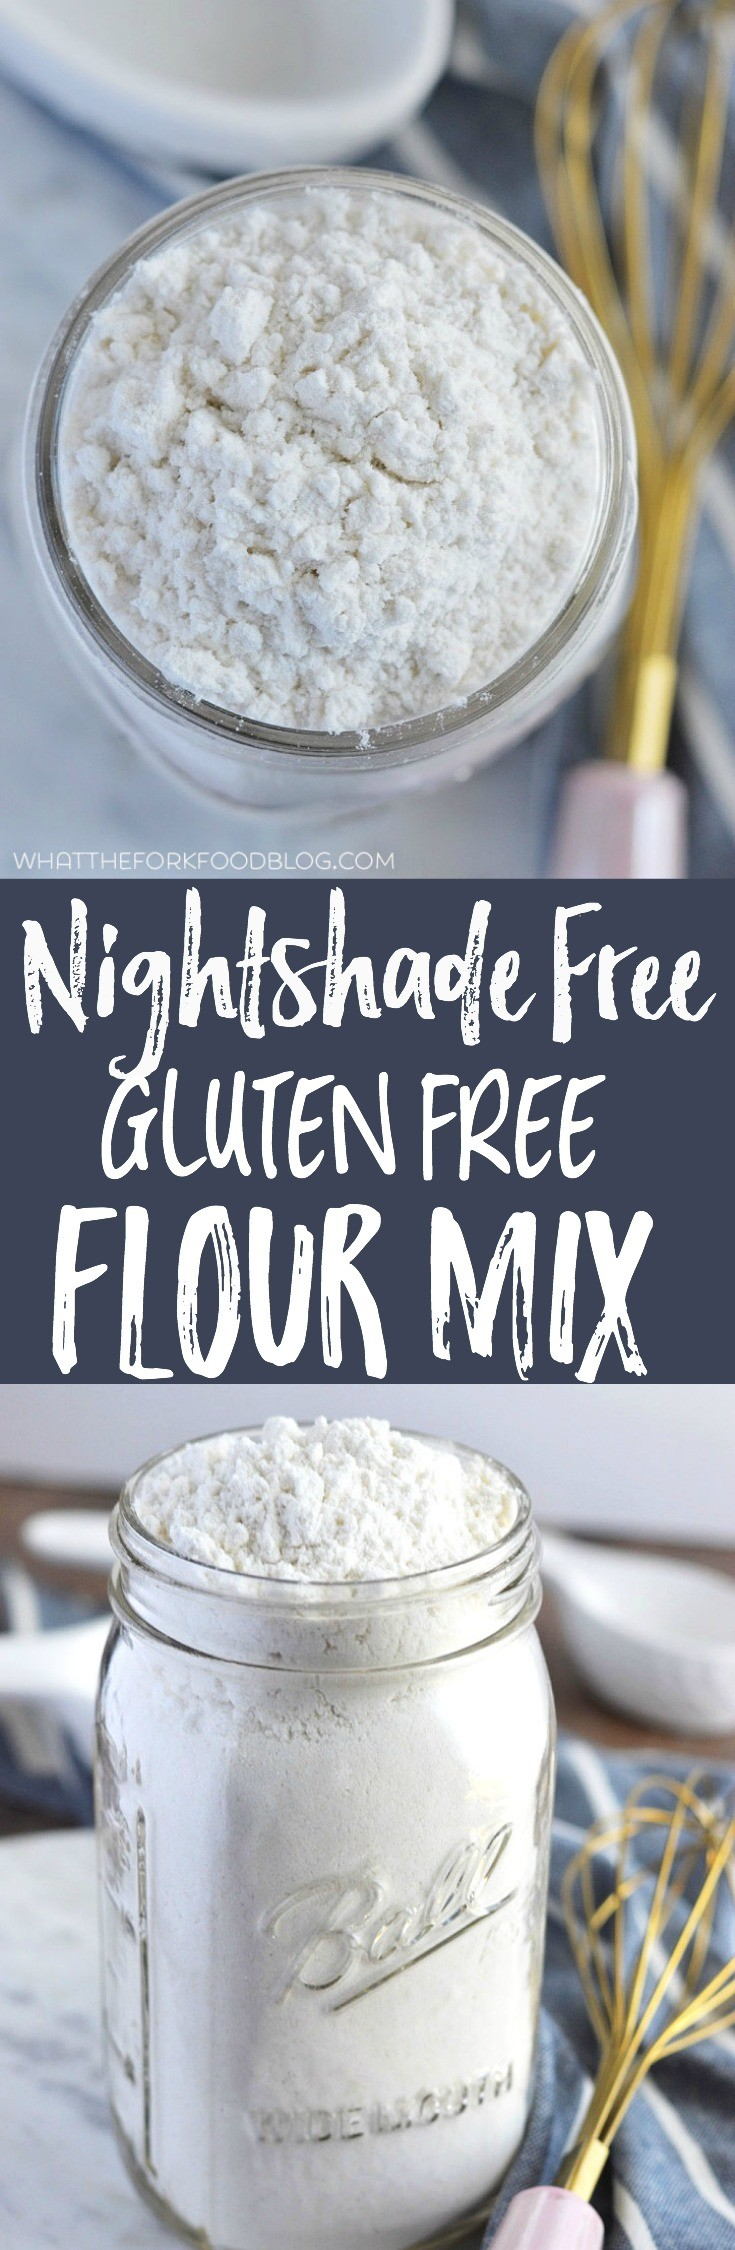 Nightshade-Free Gluten Free Flour Mix from What The Fork Food Blog | whattheforkfoodblog.com